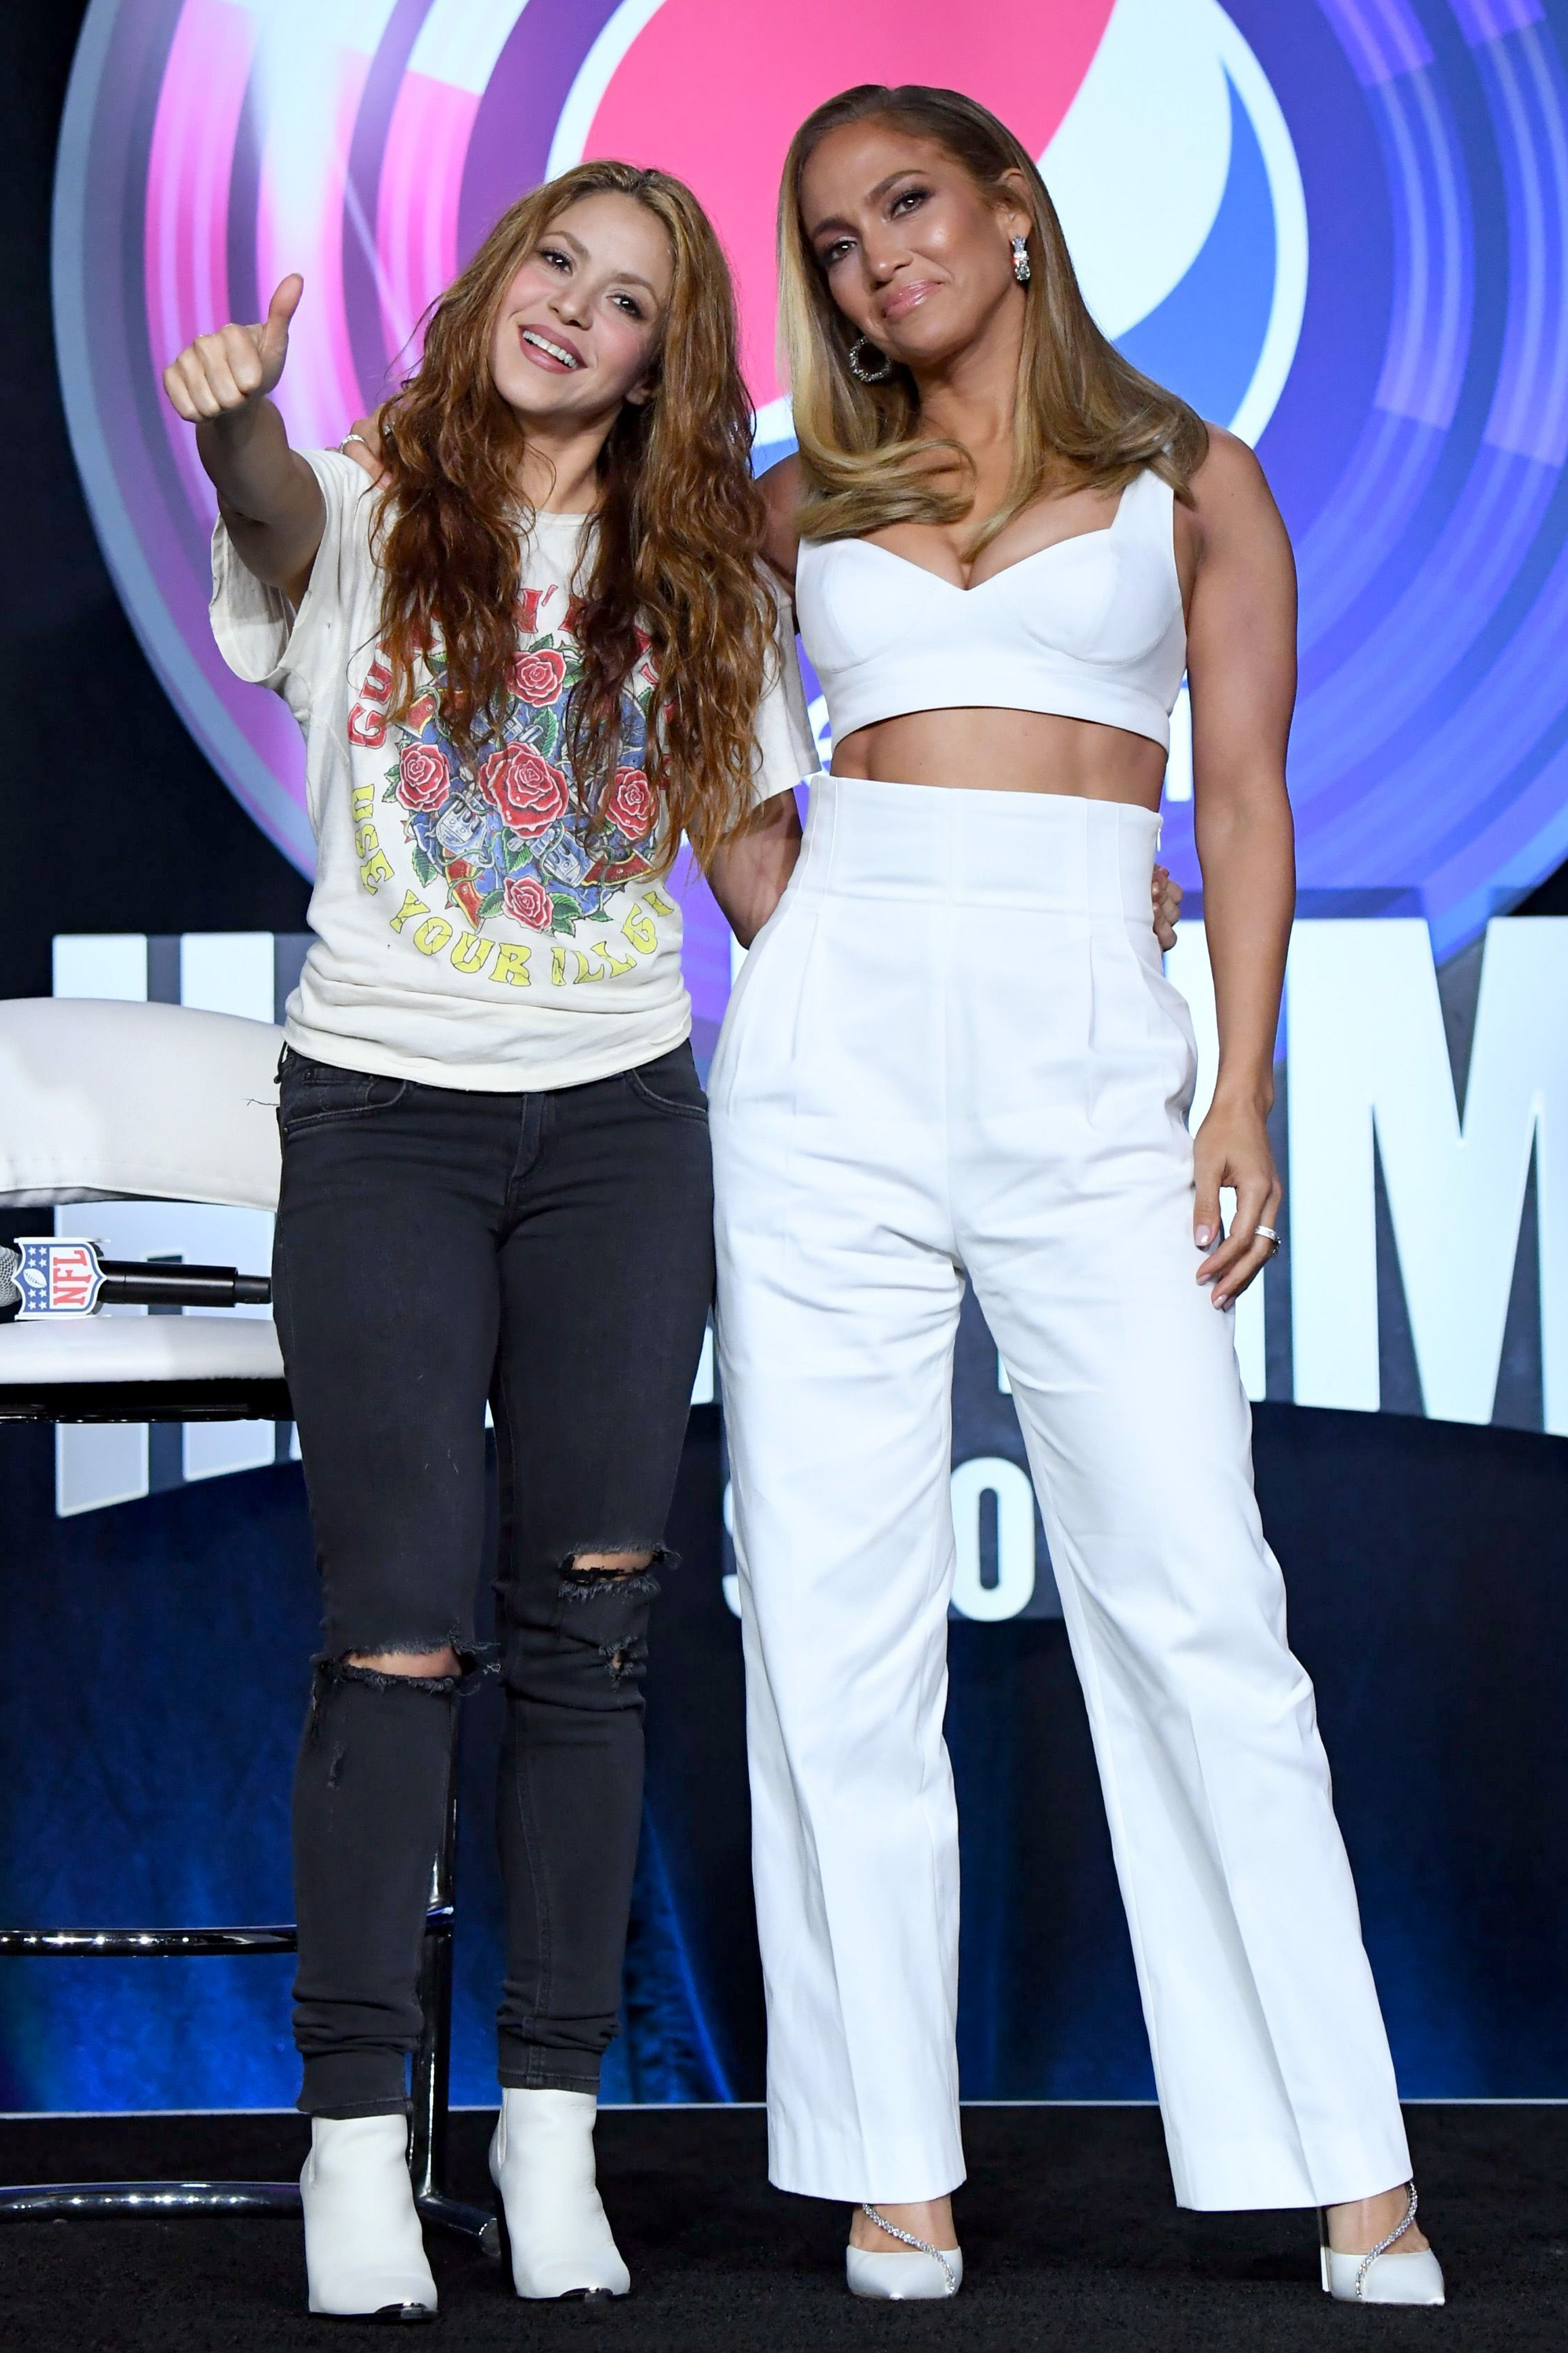 J. Lo and Shakira, posing together before the halftime show.